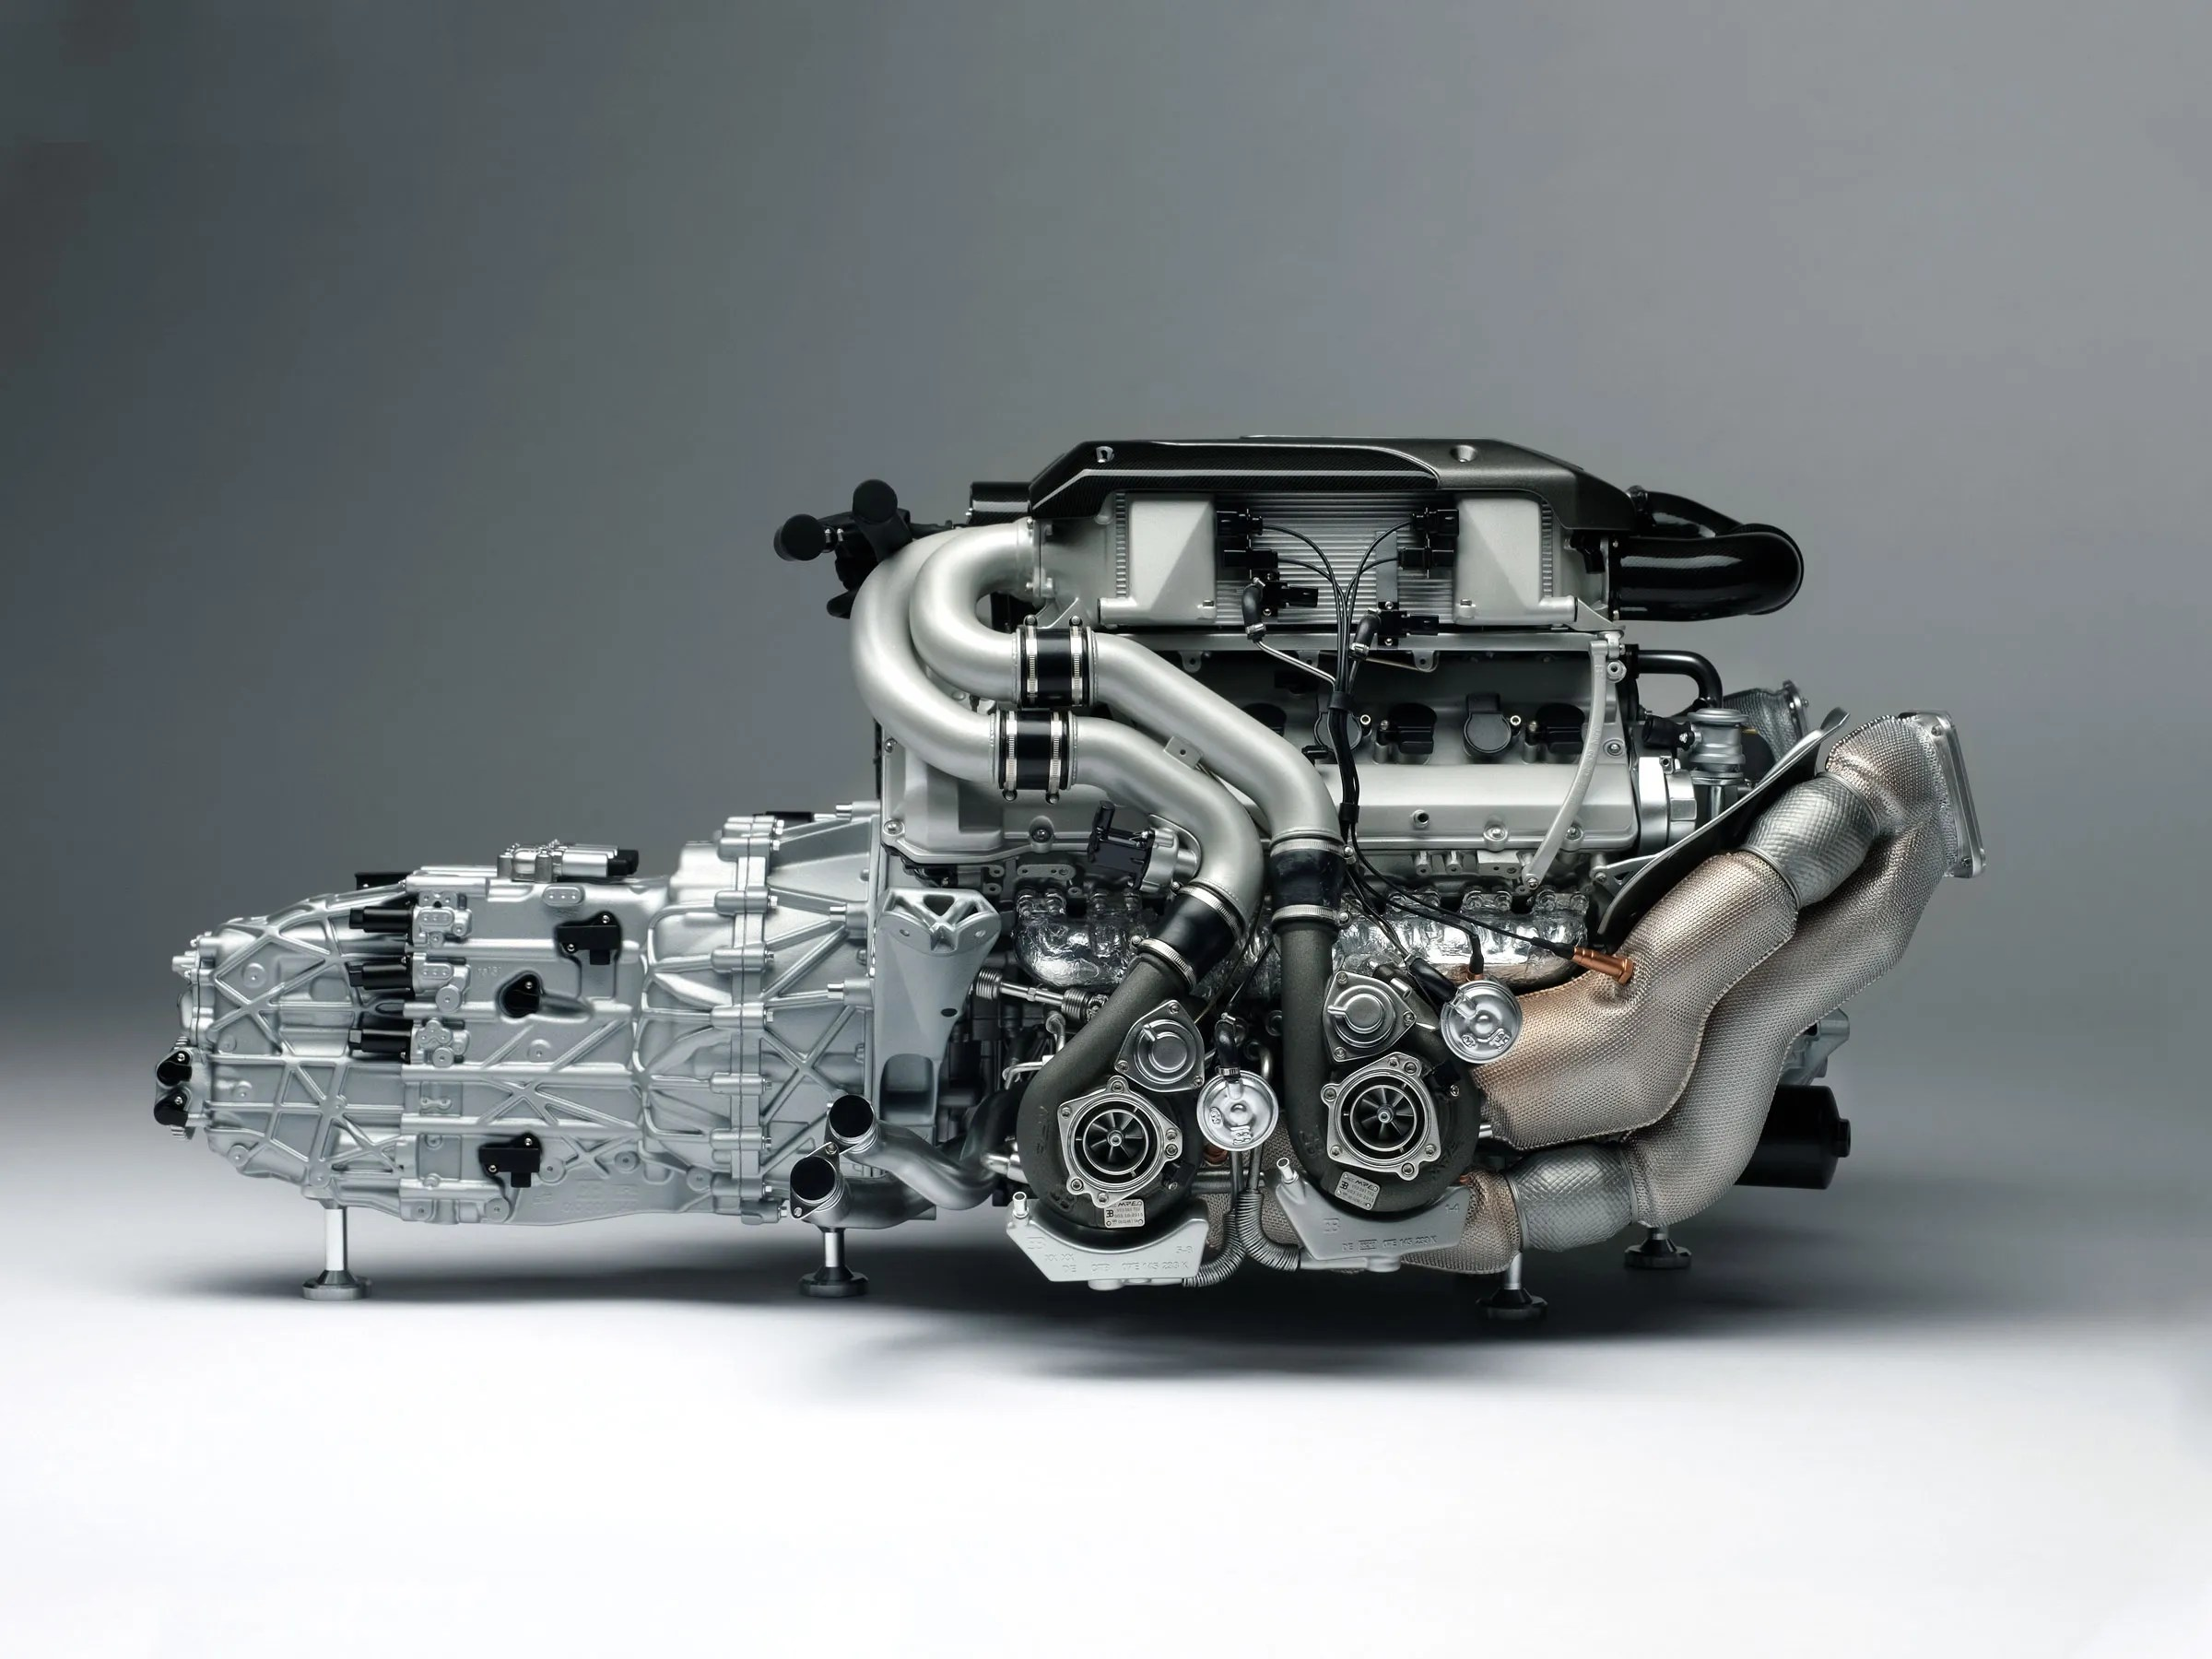 Replica ???? Get Your Own Replica Bugatti Chiron Engine For Just 9 400 Wired